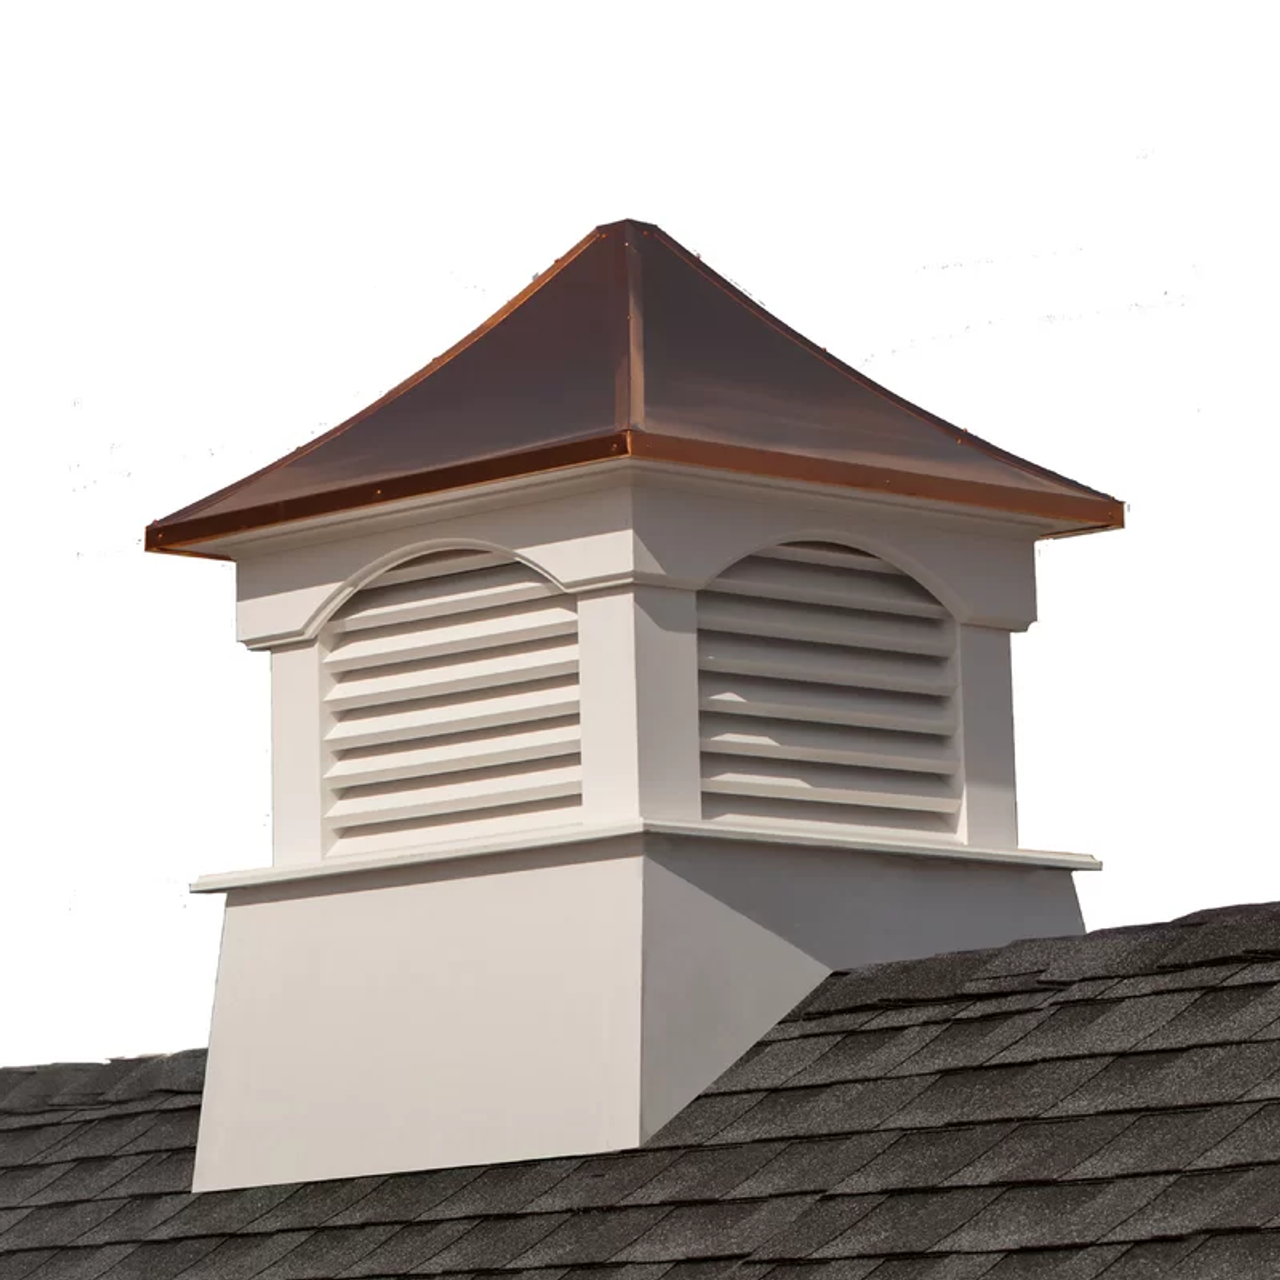 Good Directions Vinyl Coventry Cupola - 26in. square x 35in. high